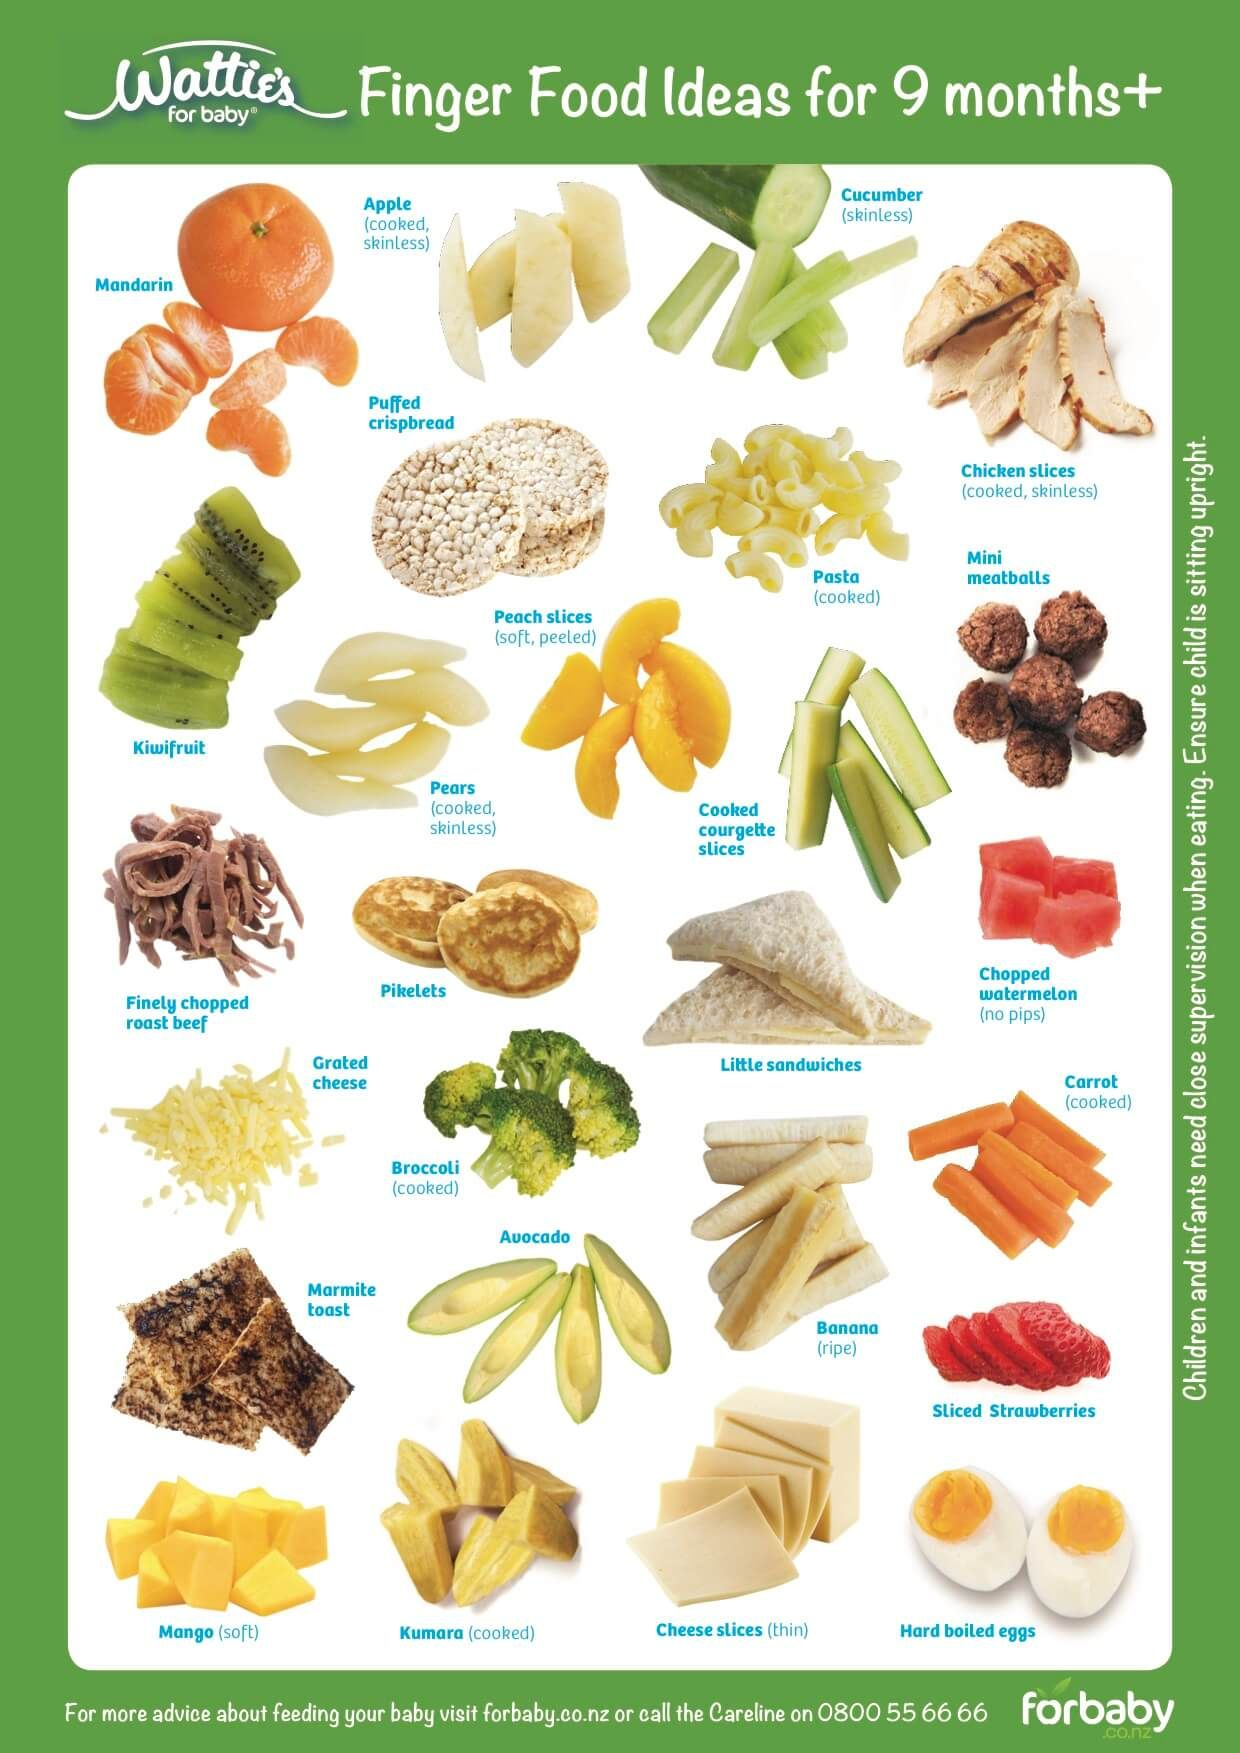 Finger Food Ideas For 9 Months Plus Healthy Baby Food